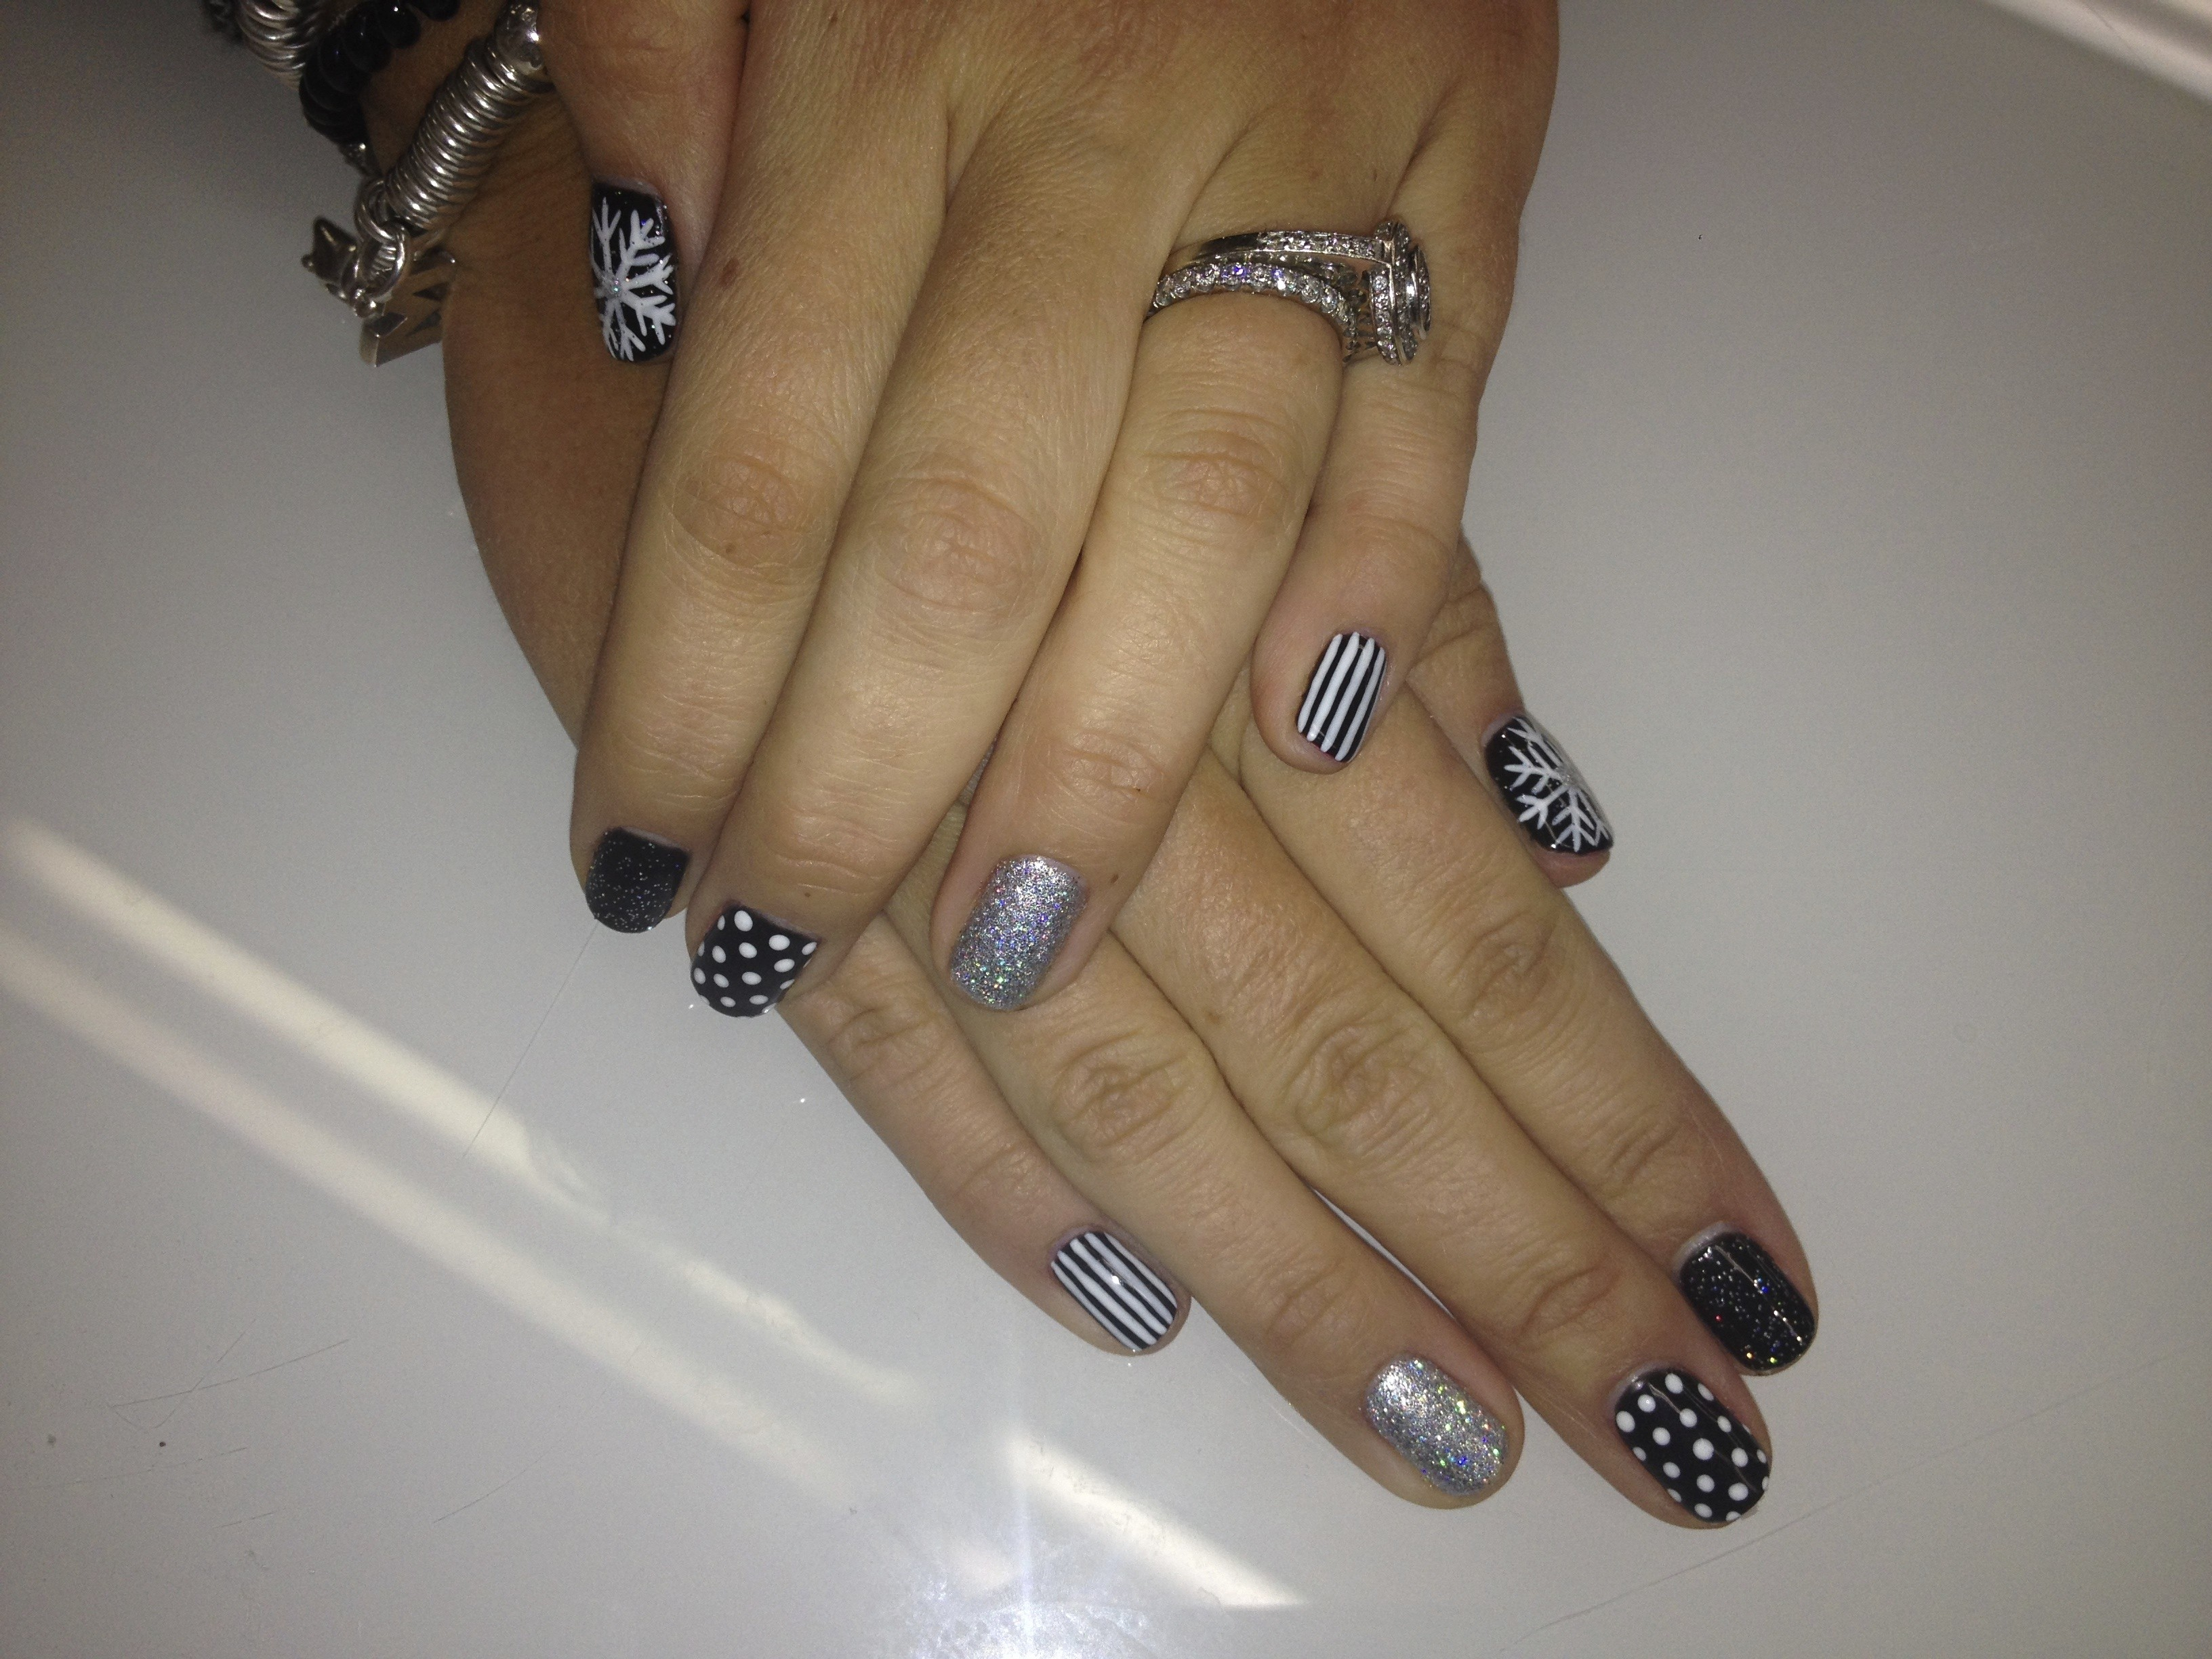 every nail different design - 28 images - 25 best ideas about ...